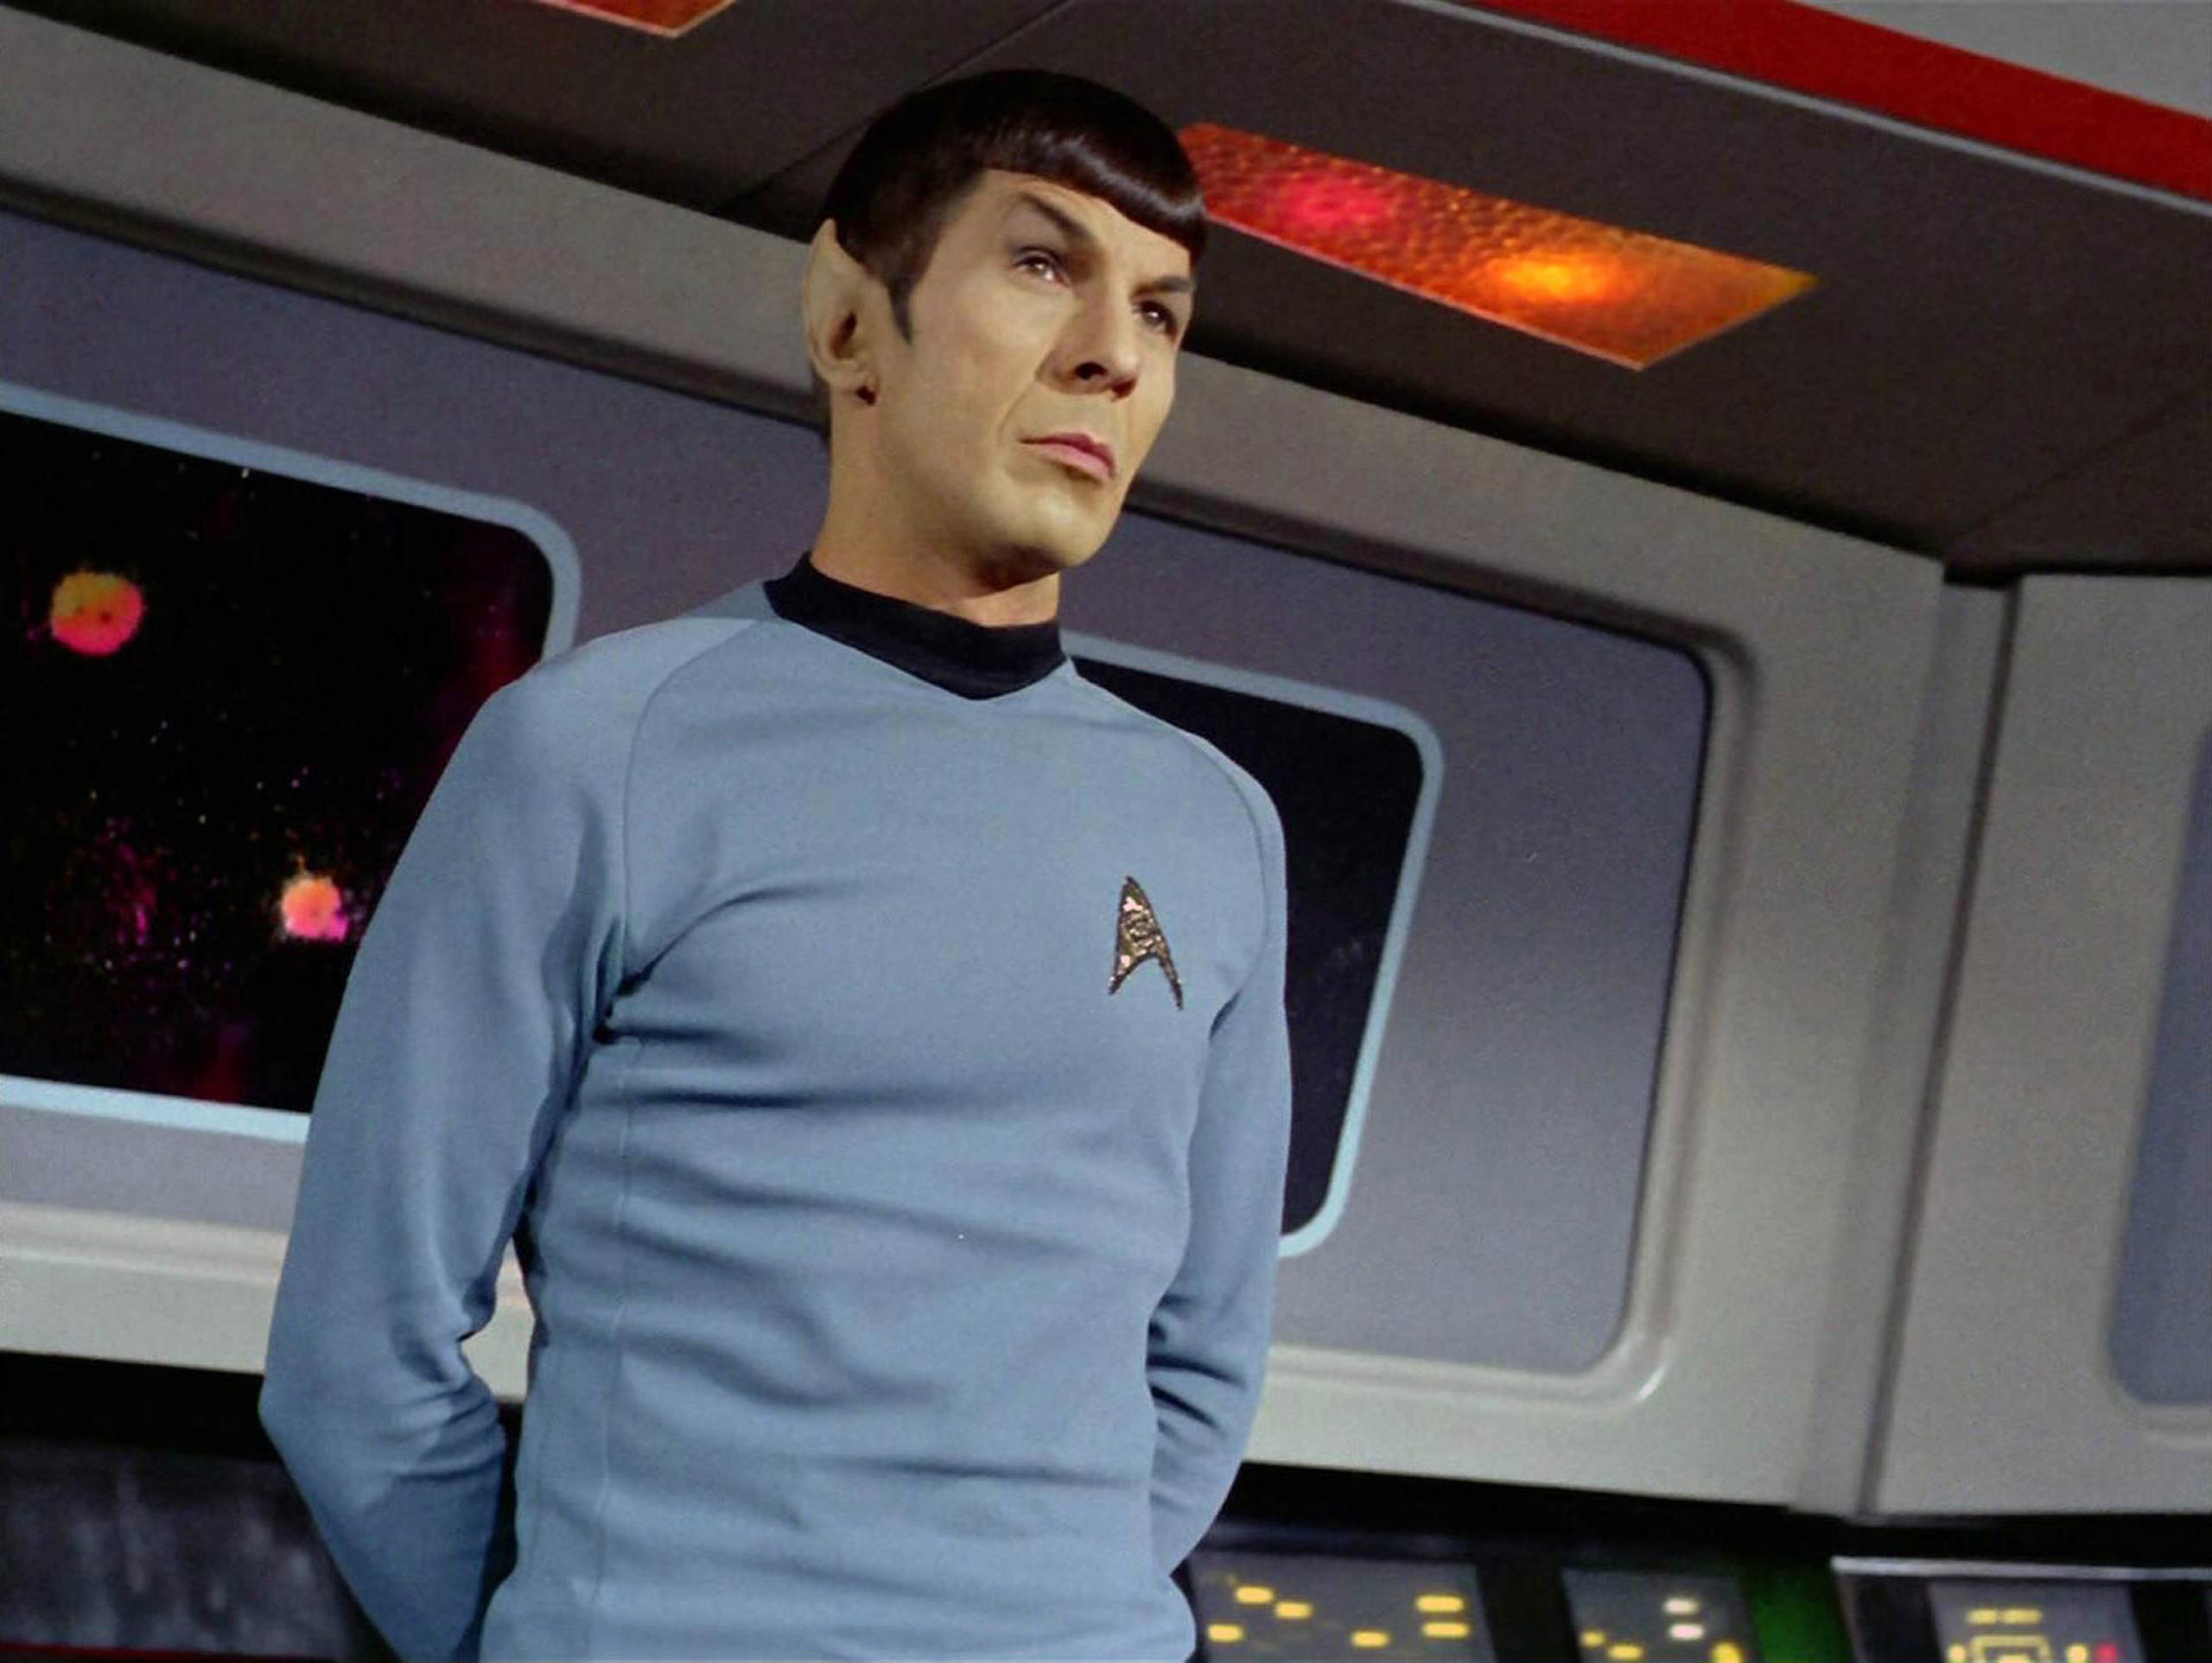 Leonard Nimoy as Mr. Spock in Star Trek in 1968.